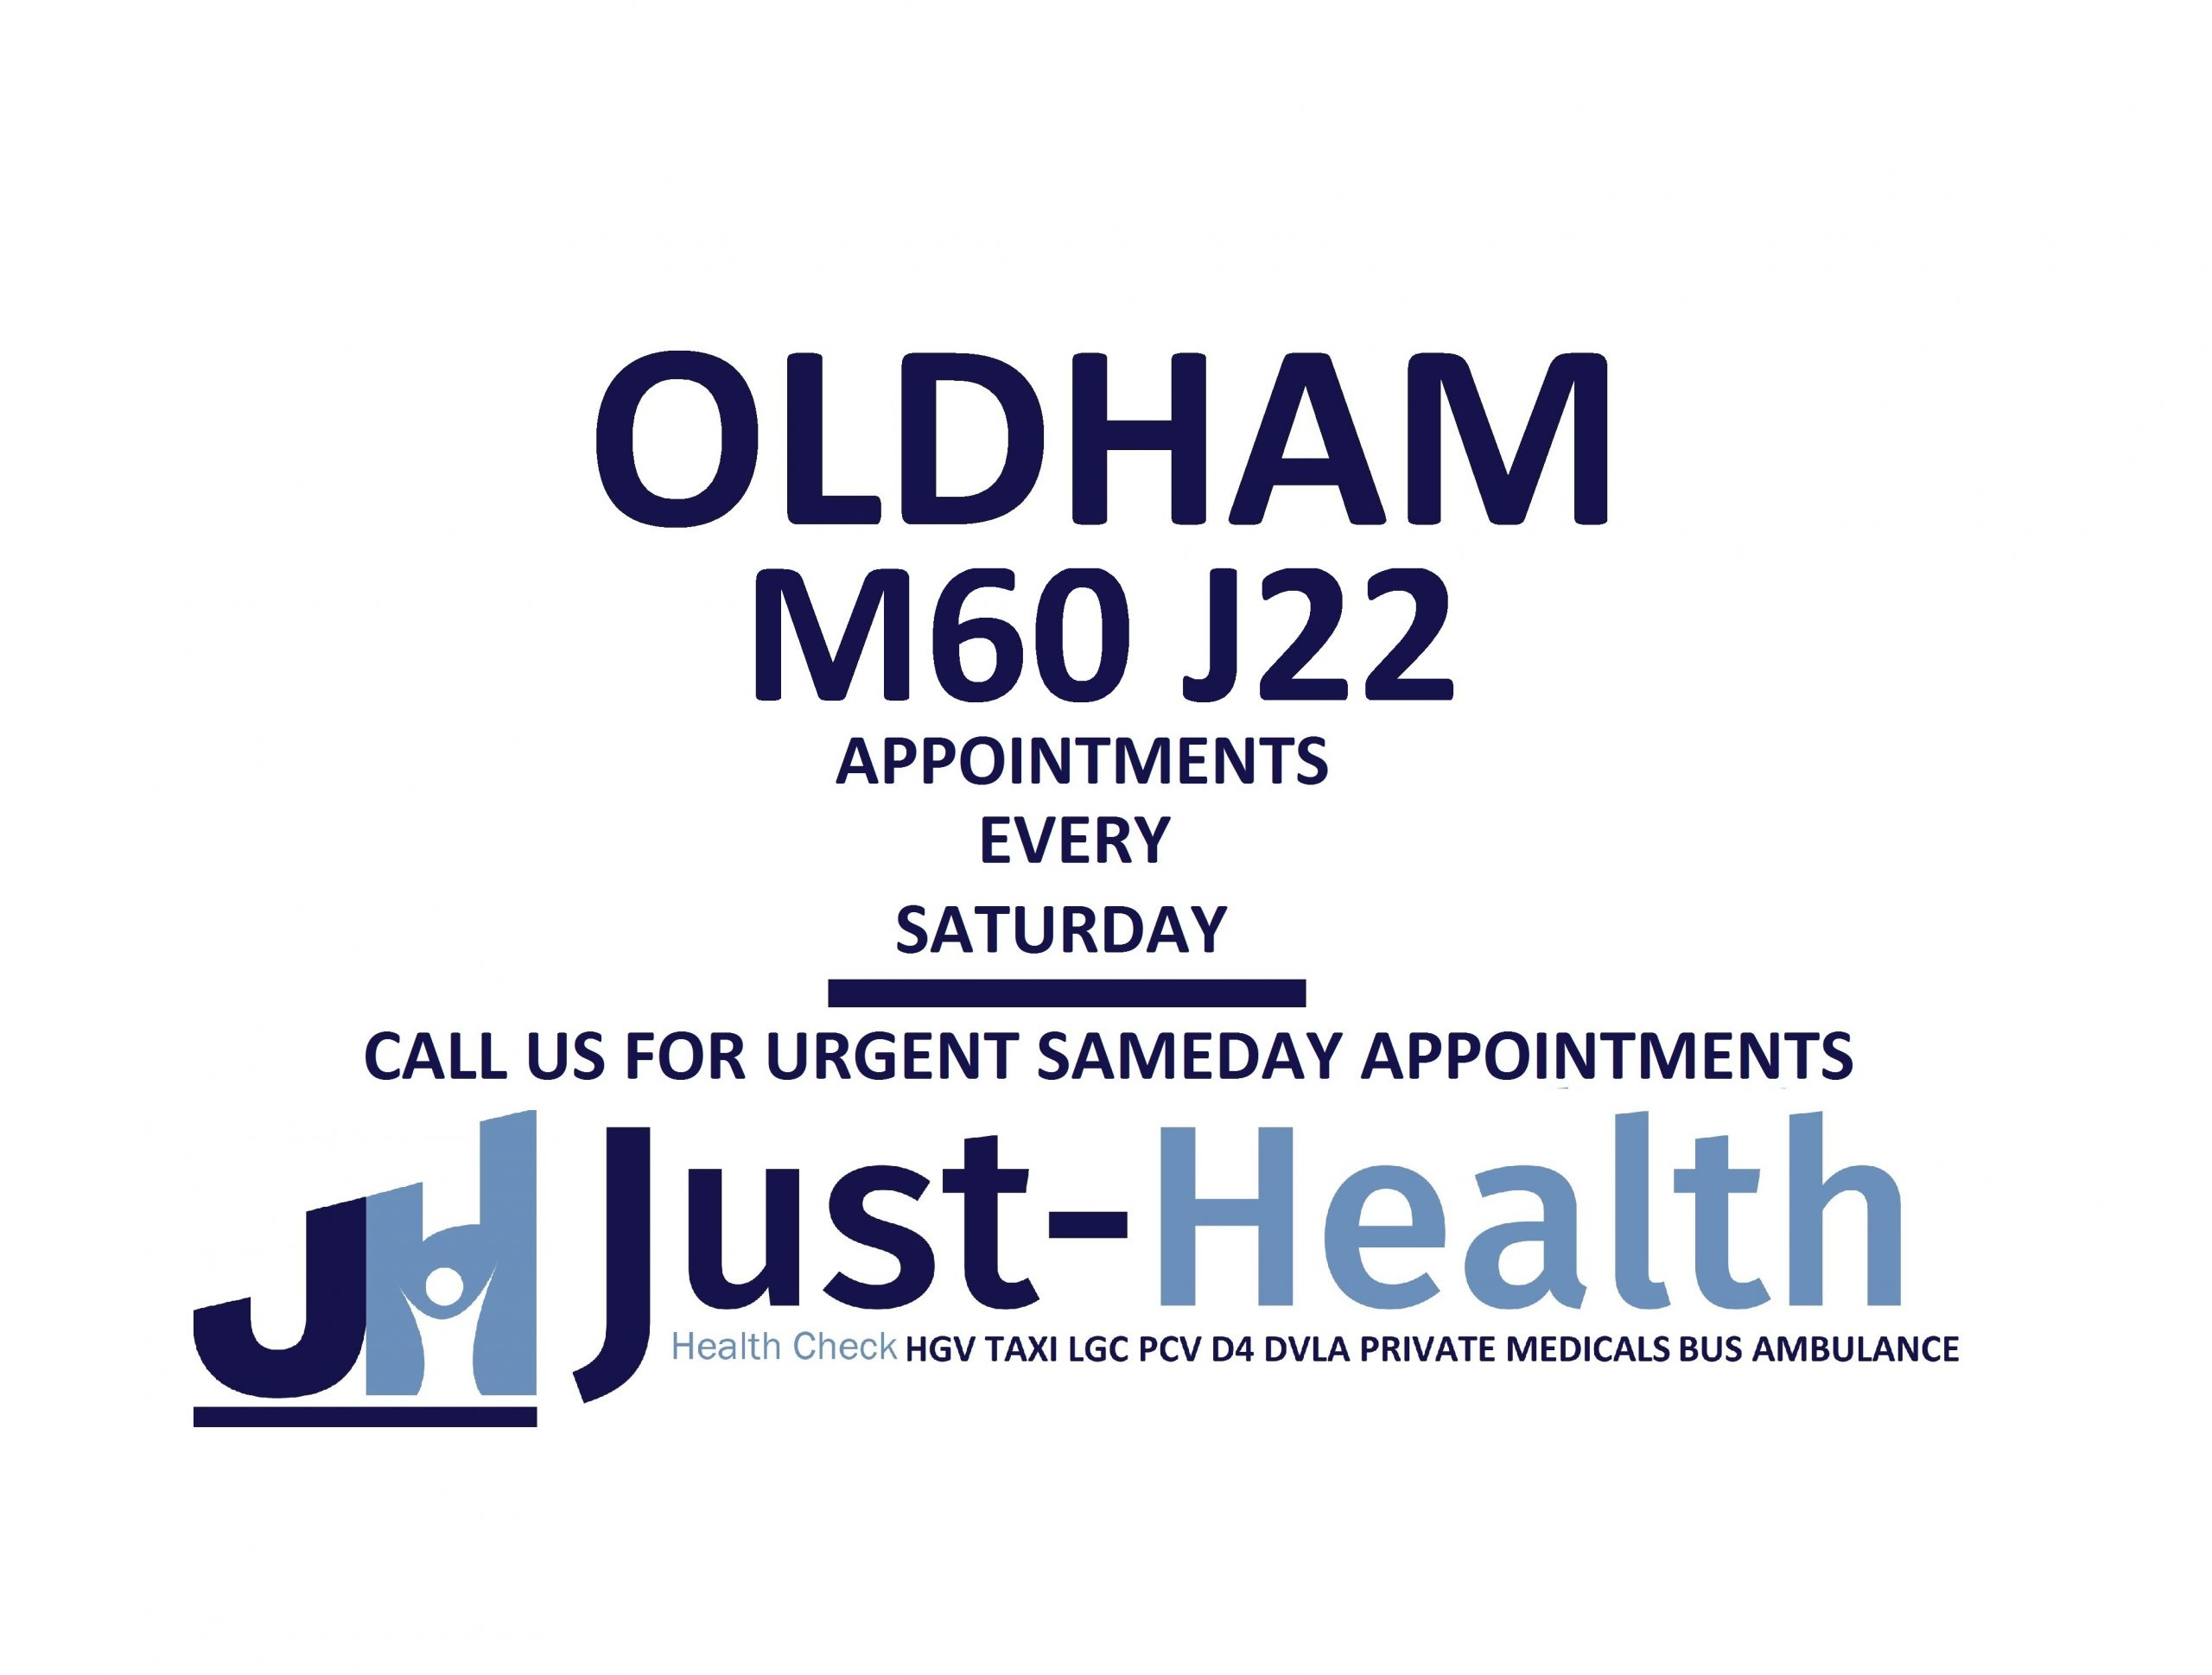 d4 PSV LGV Taxi Pcv HGV medical just health clinic oldham Greater manchester lancashire